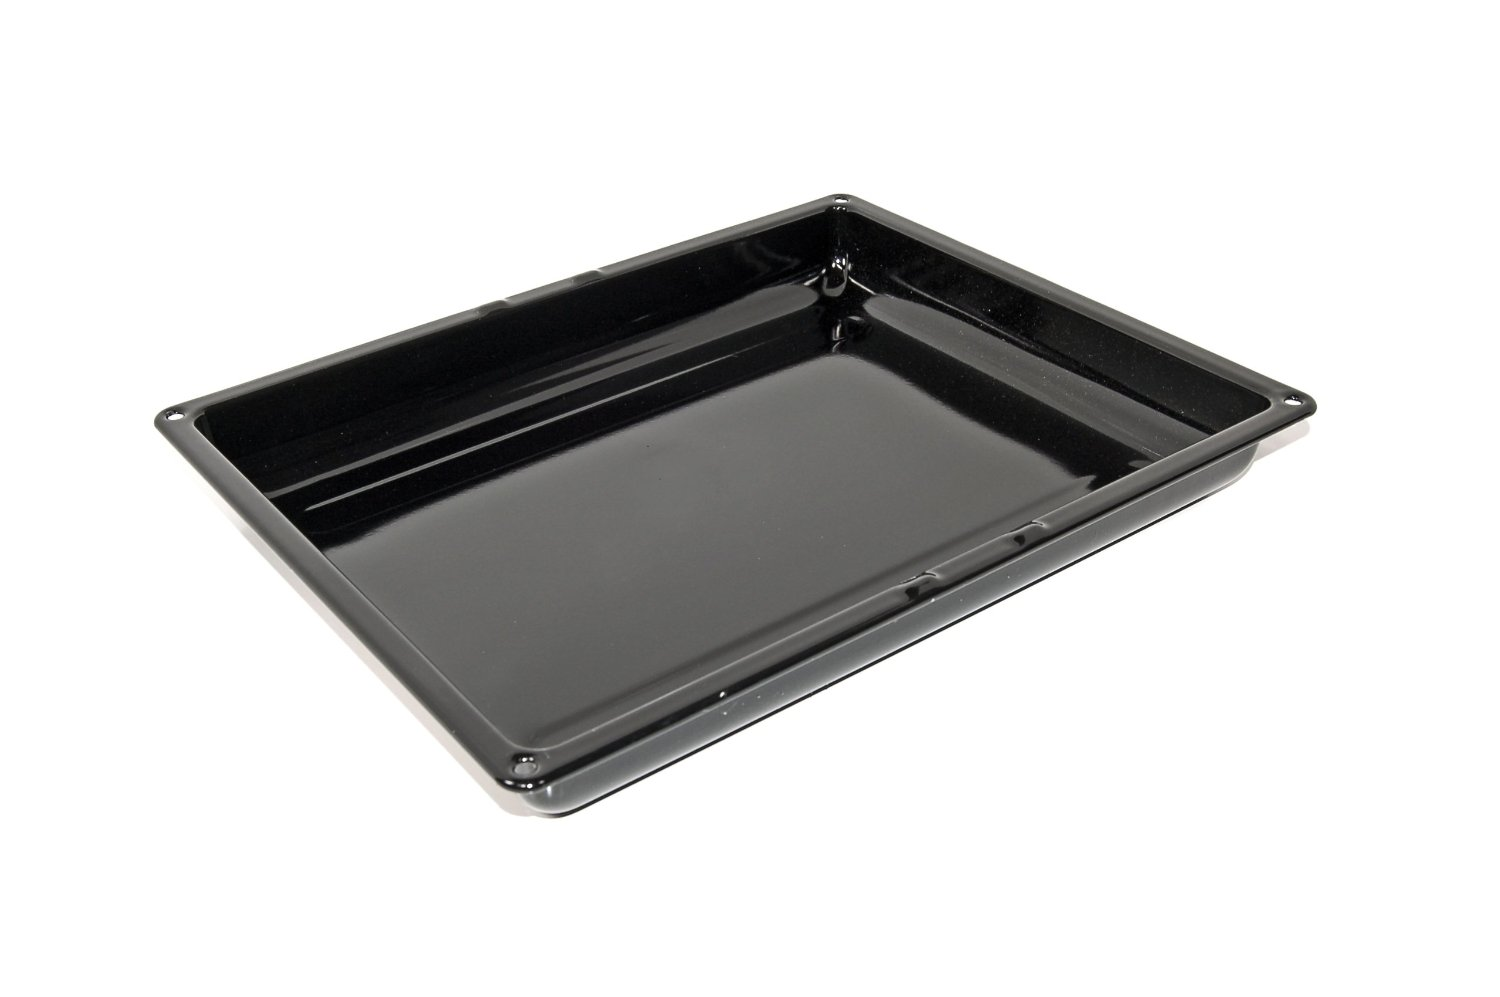 Baking Tray | Oven Pan L 350mm, W 278mm, H 45mm | Part No:419920053